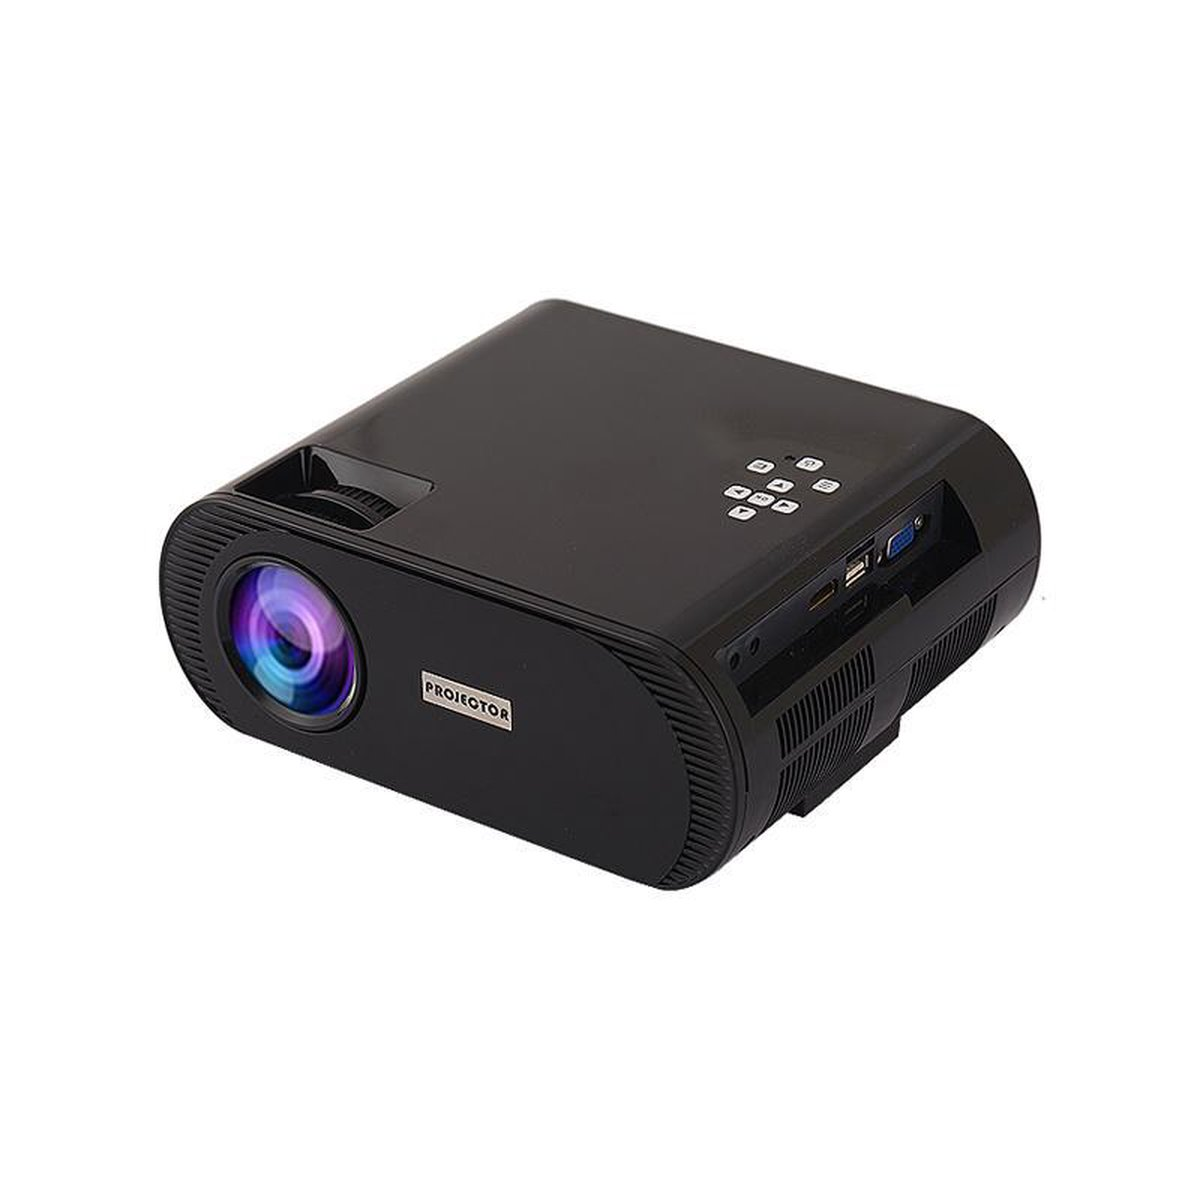 MINI BEAMER - BEAMER - BEAMER PROJECTOR - INCLUSIEF WIFI DONGLE - INCLUSIEF HDMI KABEL - INCLUSIEF OPBERGHOES